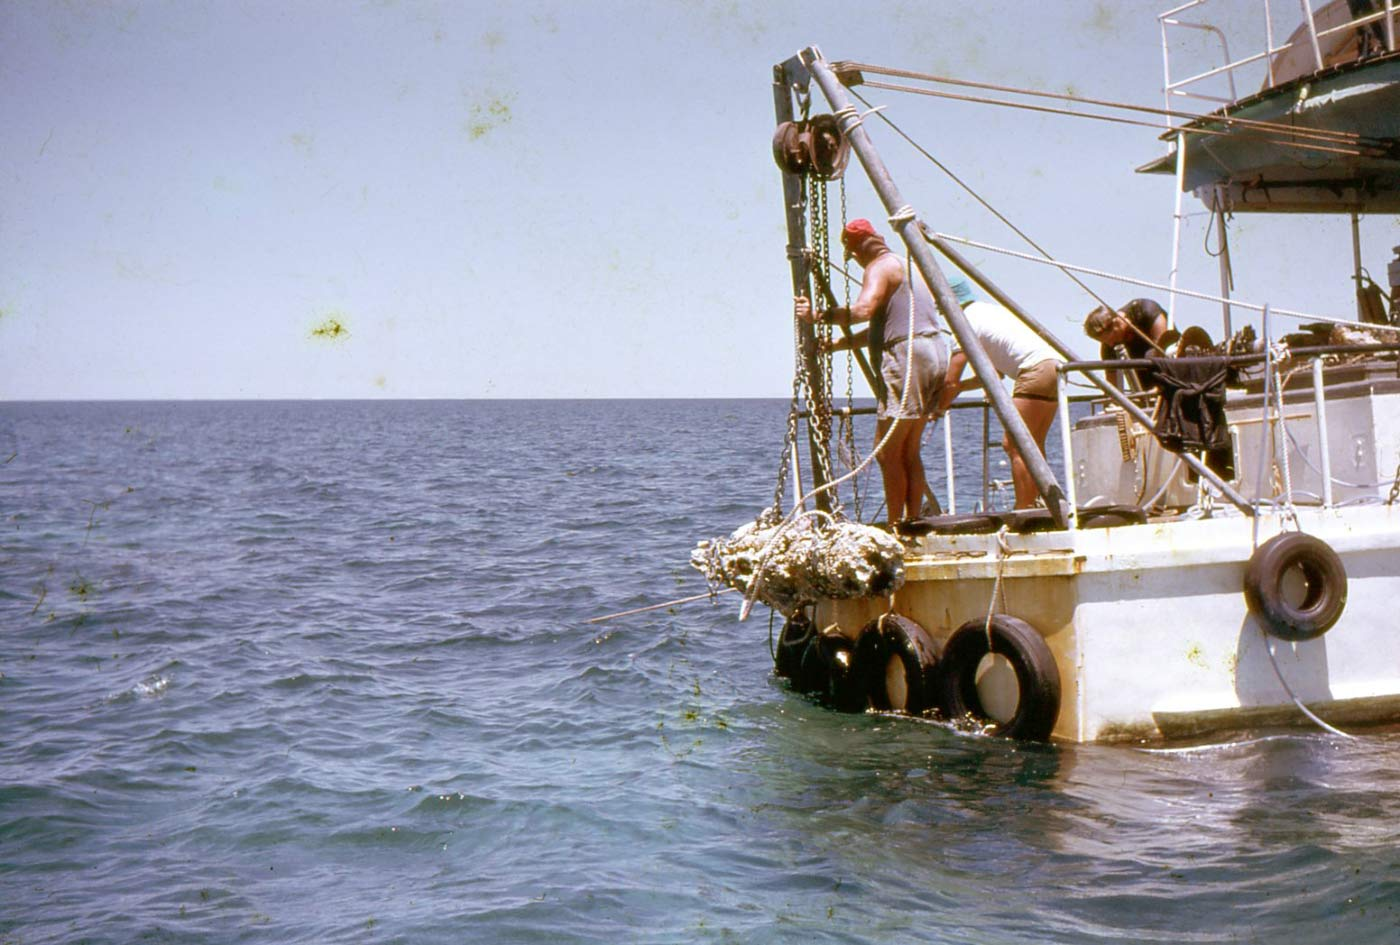 Colour photo of three men at the back of boat, hoisting a cannon covered in coral and sediment from the sea. - click to view larger image